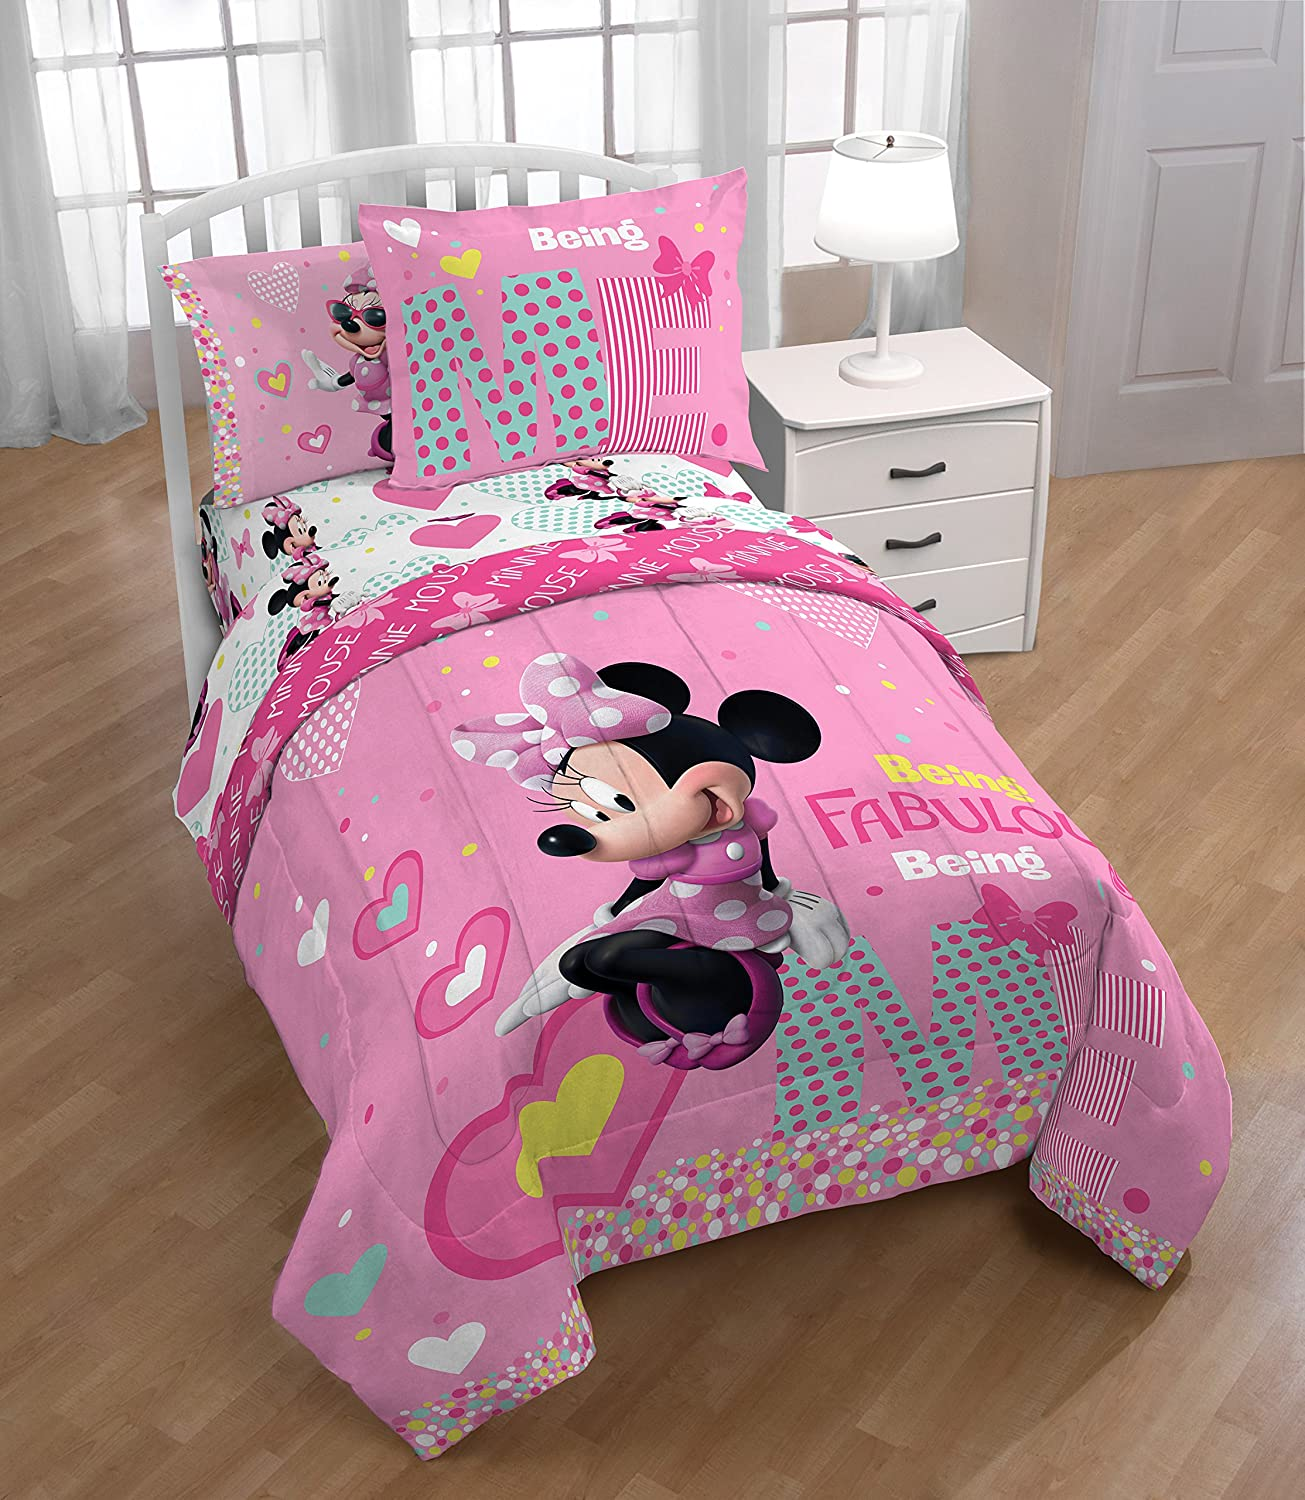 Amazon Com Minnie Mouse Full Comforter Sheets Sham 6 Piece Bed In A Bag Minnie Mouse Hand Towel Home Kitchen